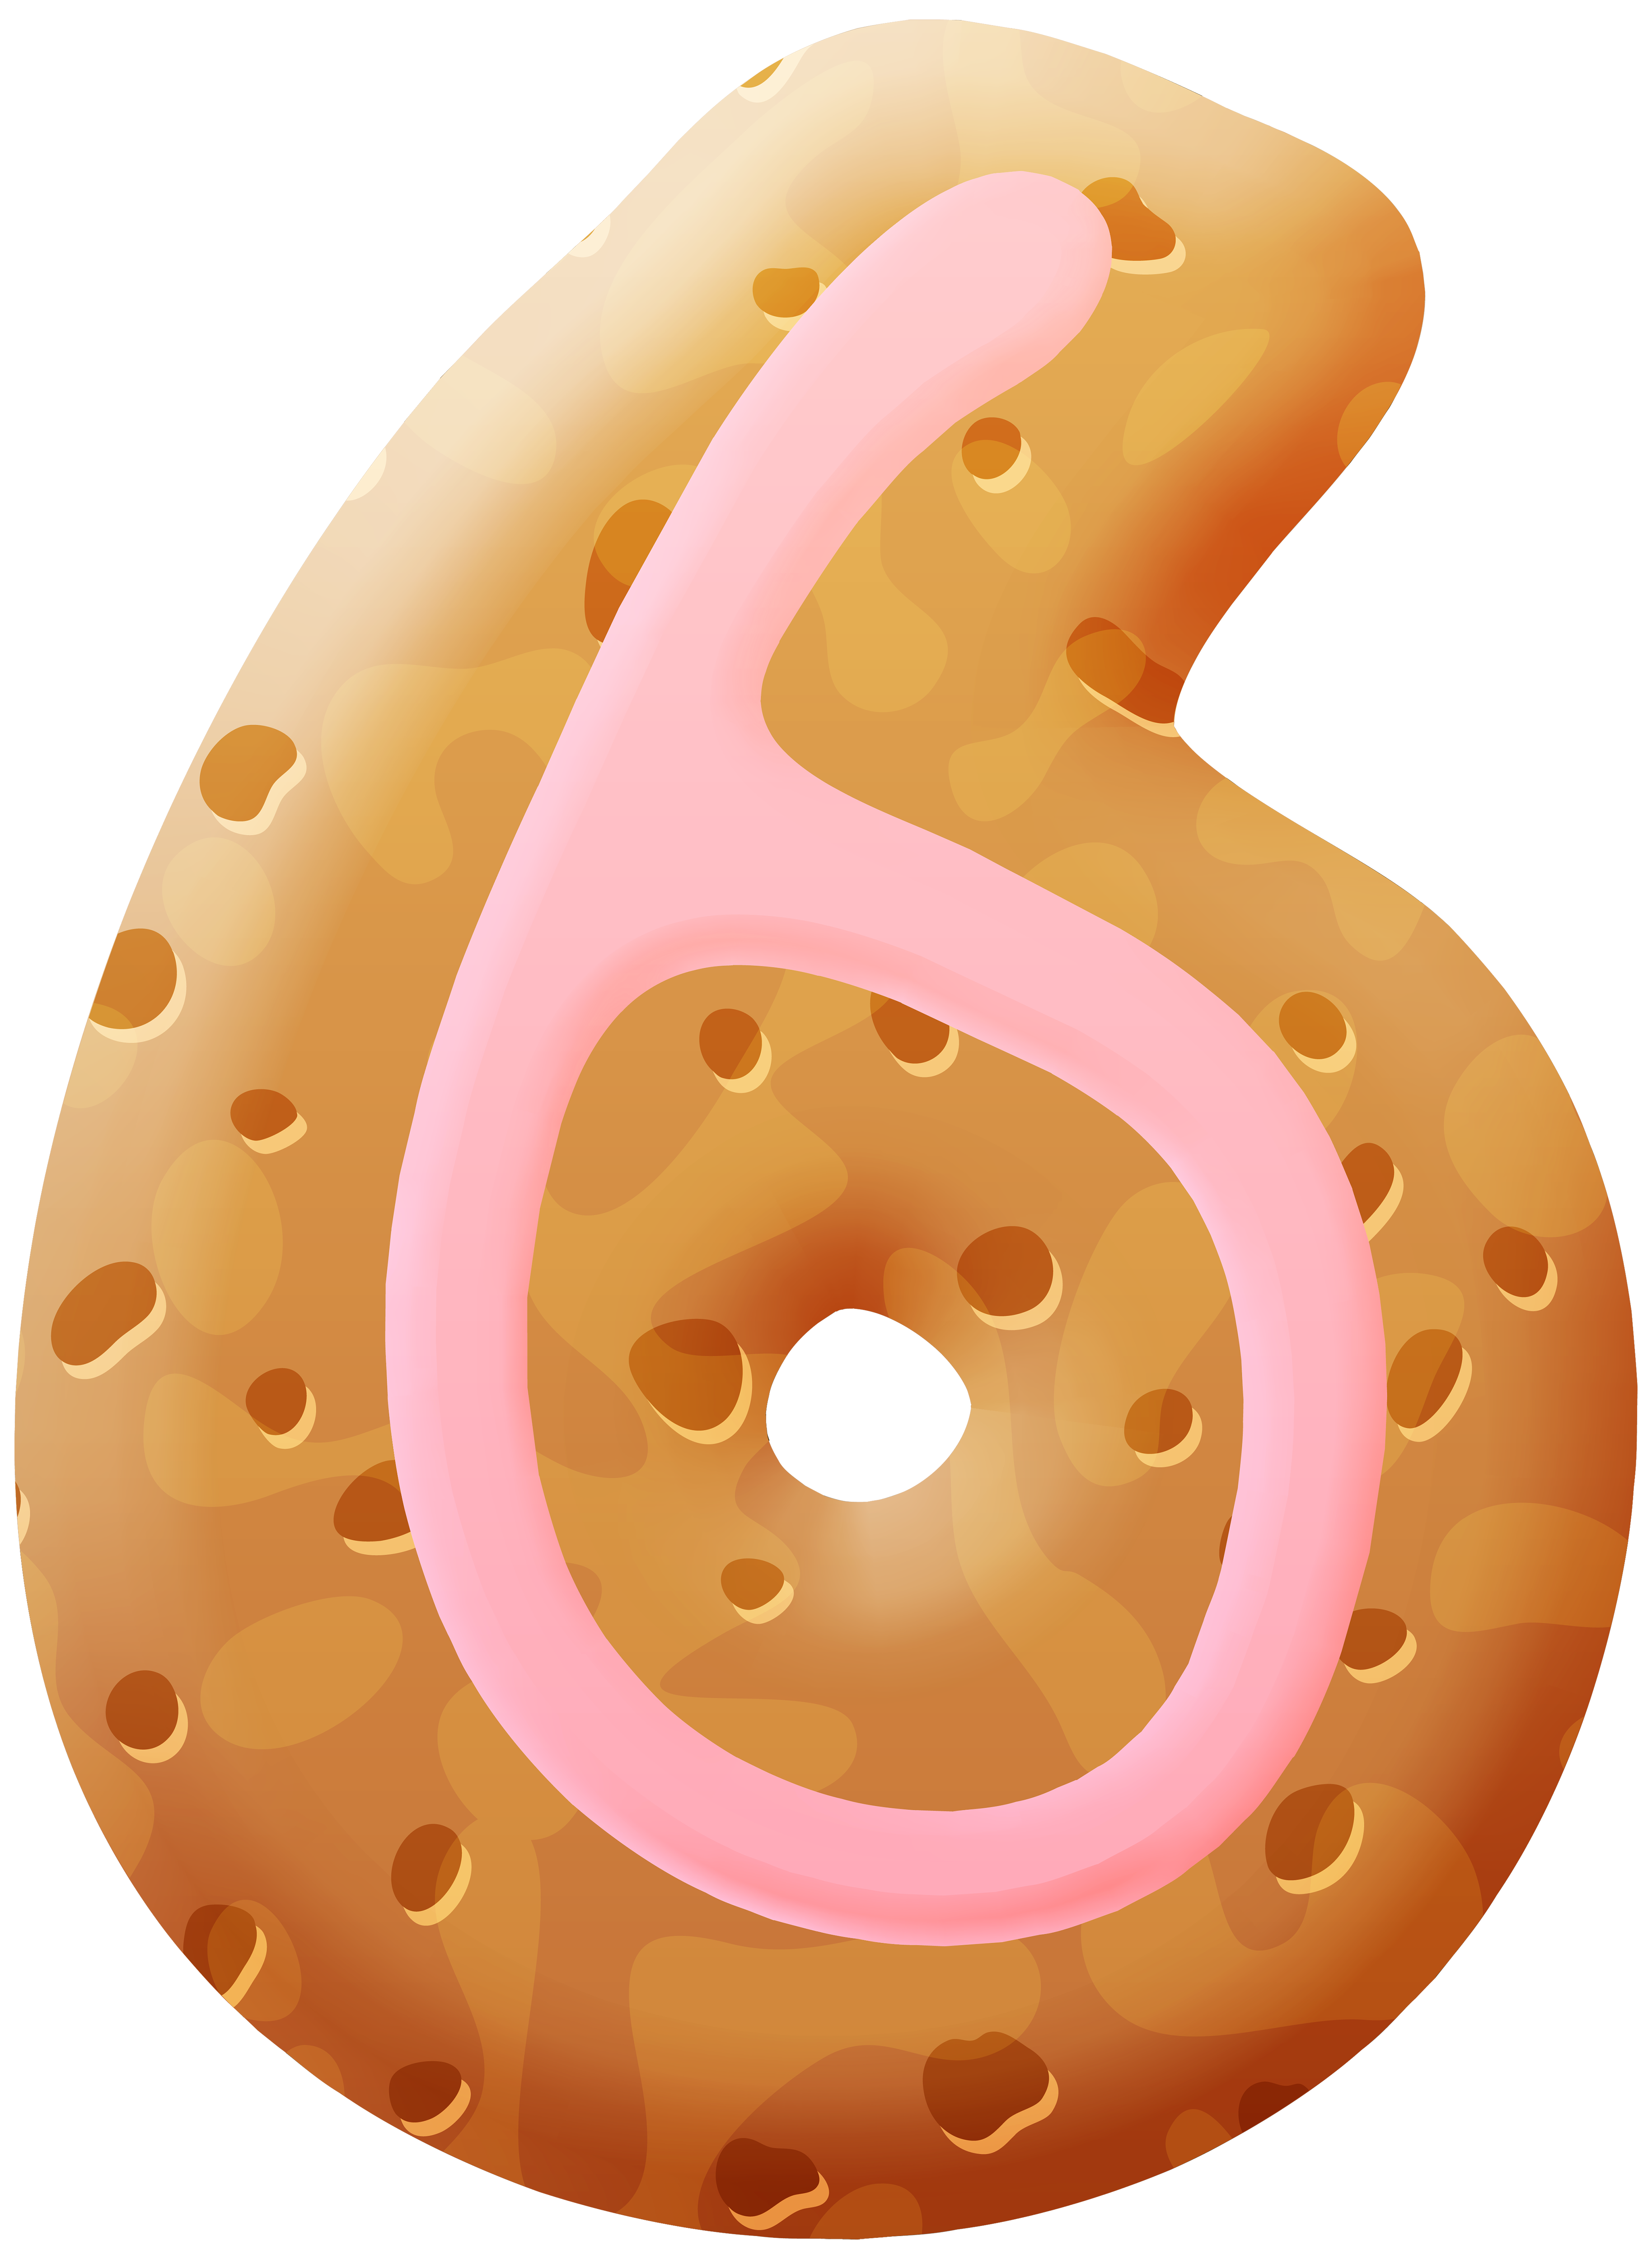 Wheel clipart rock. Biscuit number six png